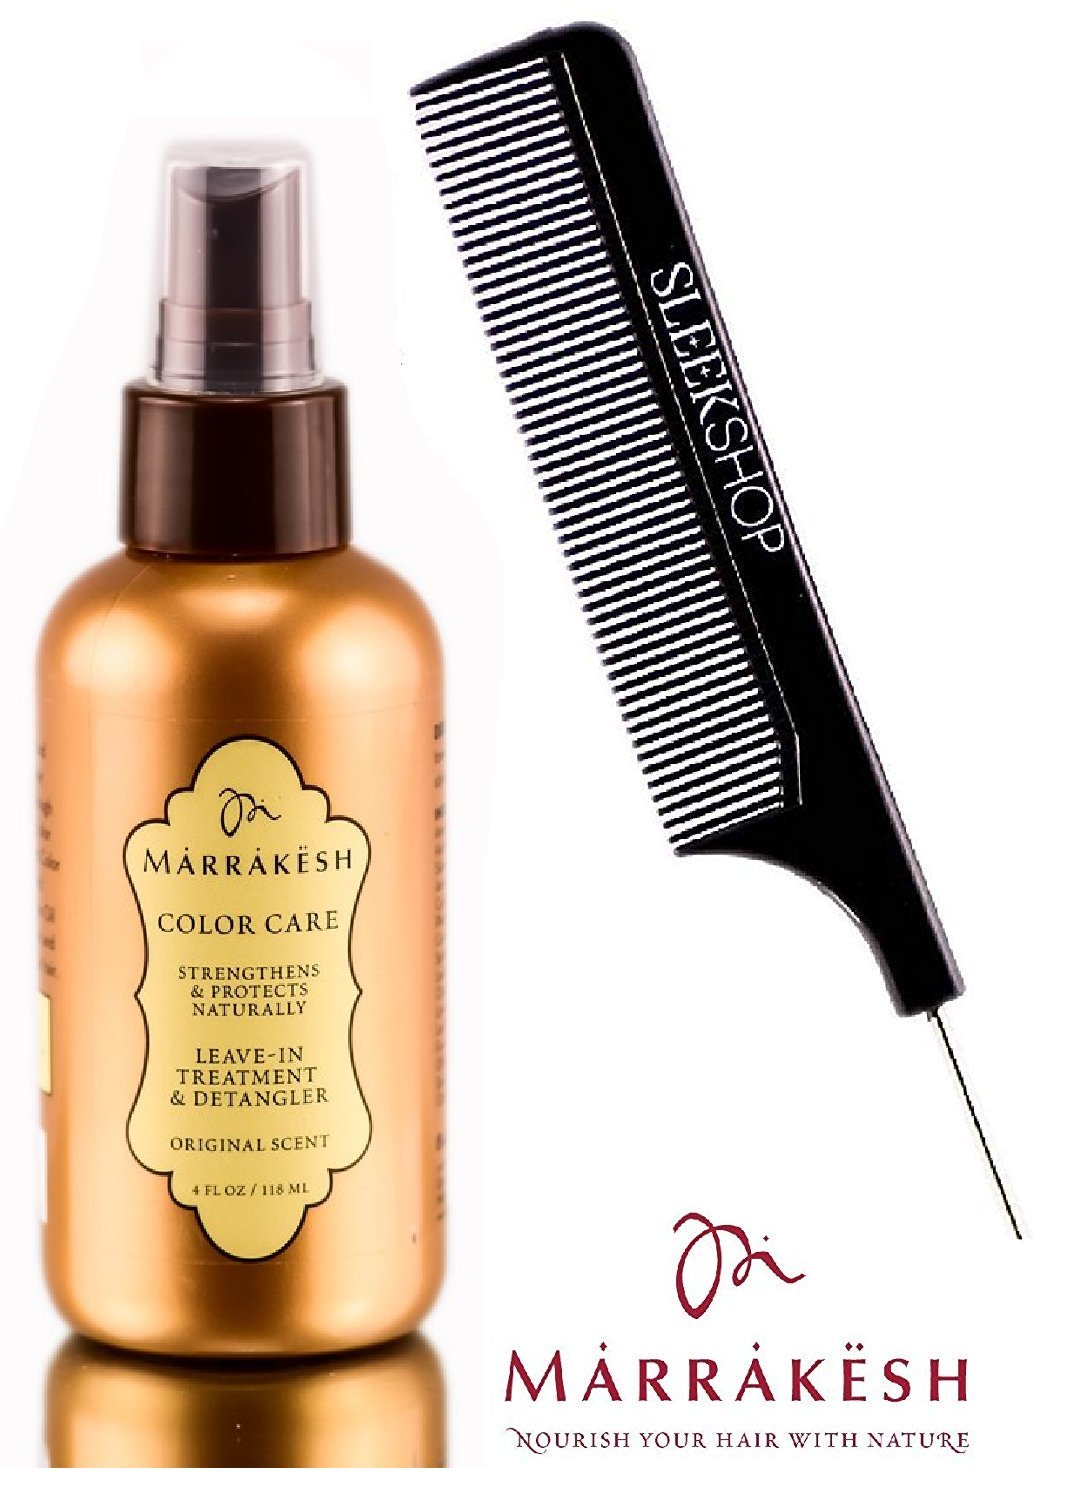 Marrakesh COLOR CARE Leave-In Treatment & Detangler, STRENGTHENS & PROTECTS NATURALLY, Original Scent (with Sleek Steel Pin Tail Comb) (Color Care - 4 oz / 118 ml)